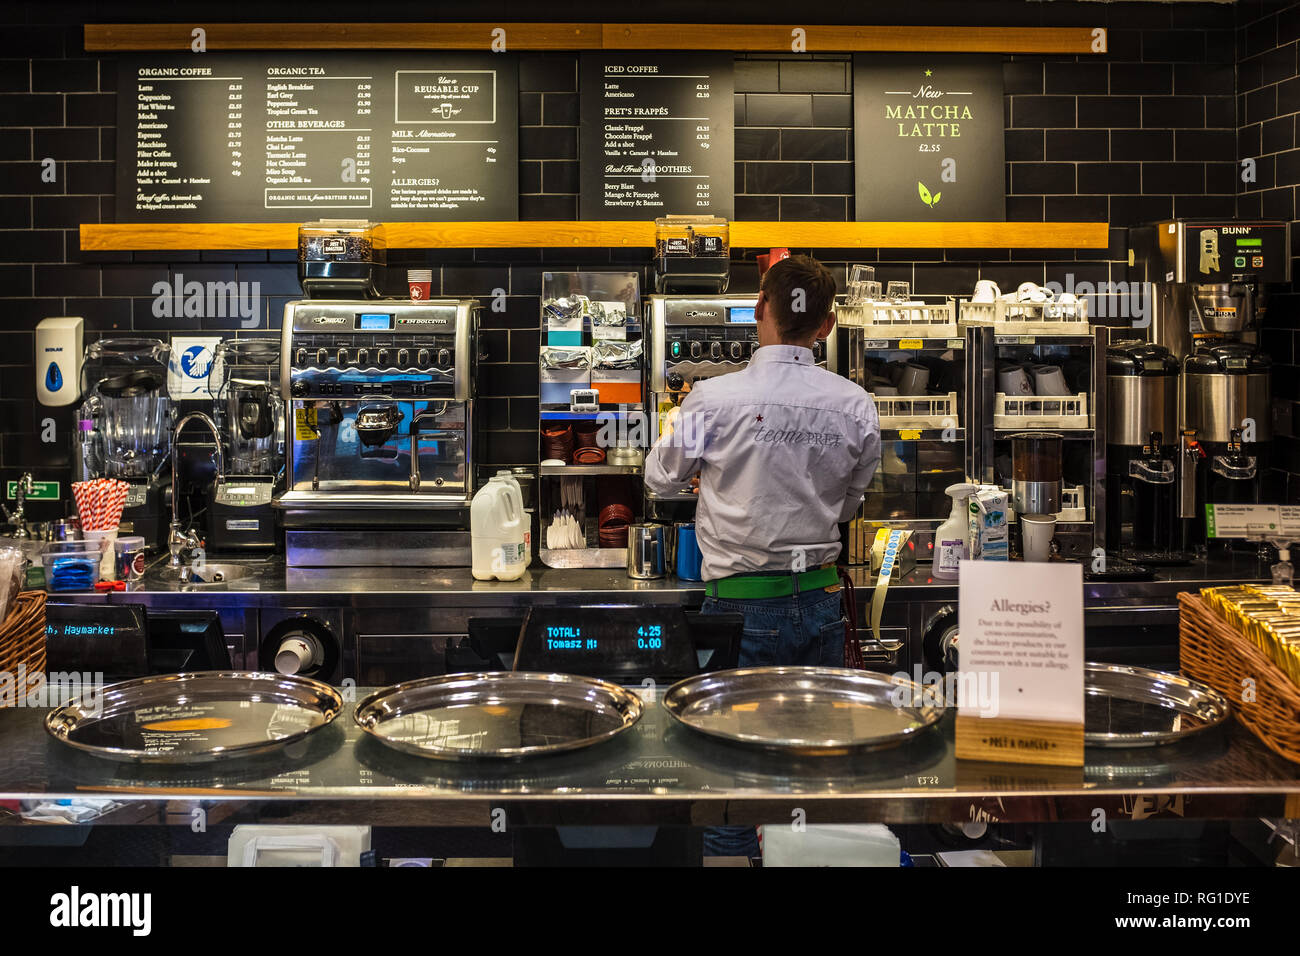 Pret a Manger service counter with Barista making coffee - Pret is a fresh food fast food restaurant chain - Stock Image